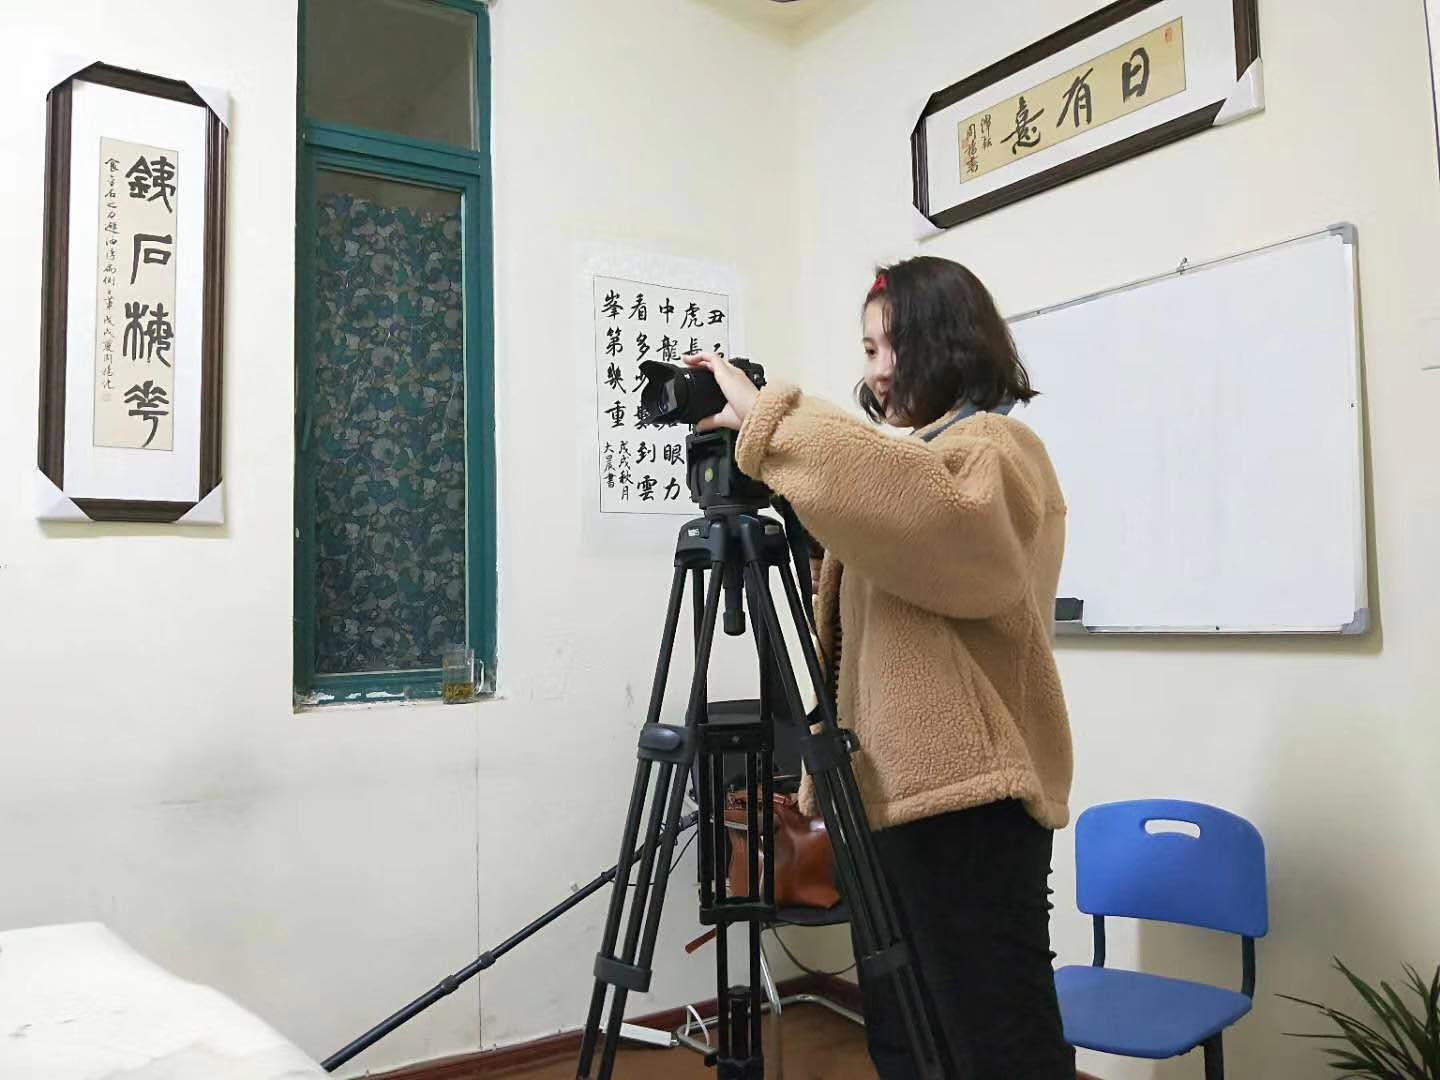 Eve Zhao on location shooting her documentary.